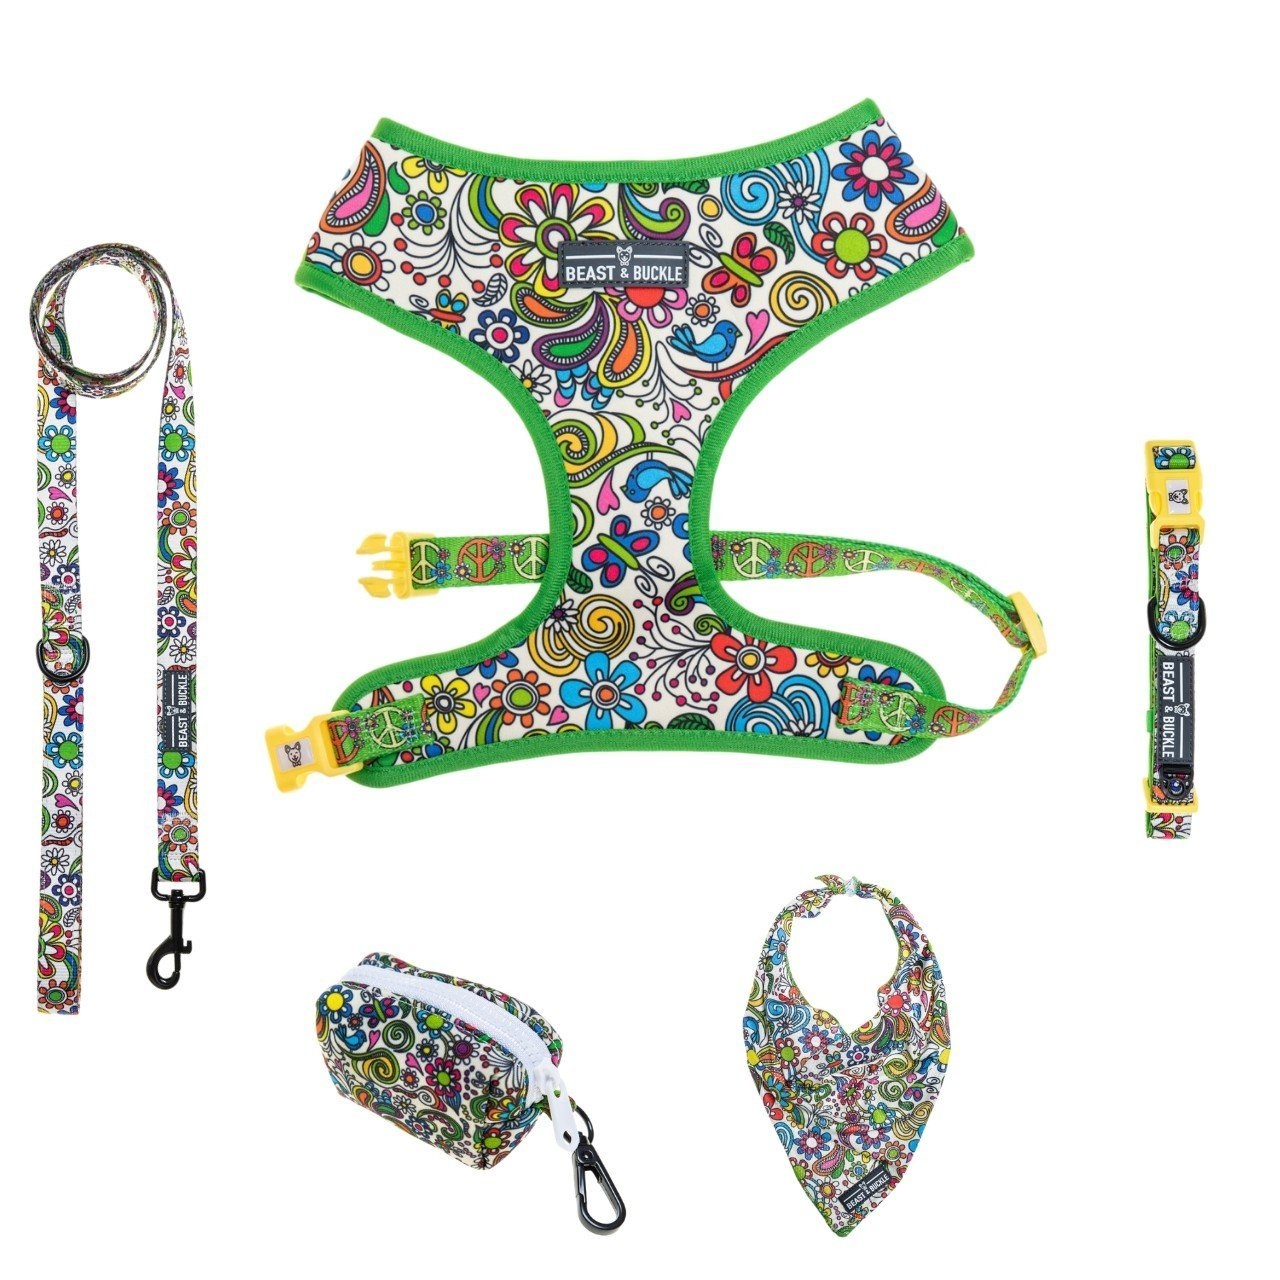 Flower Power Classic Harness Collection Bundle - Beast & Buckle